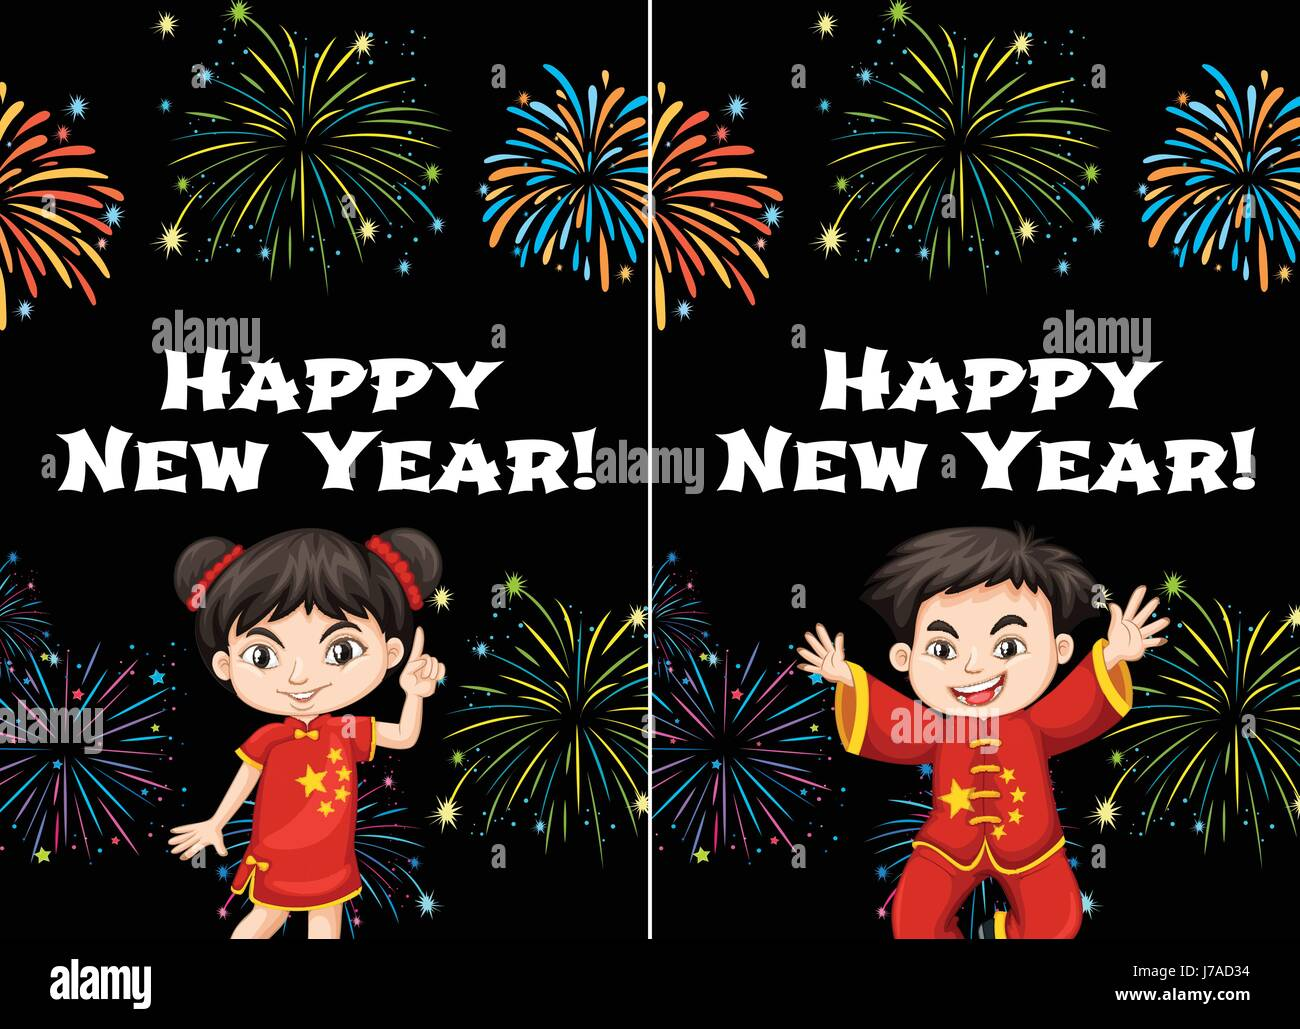 chinese kids and happy new year card templates illustration stock image